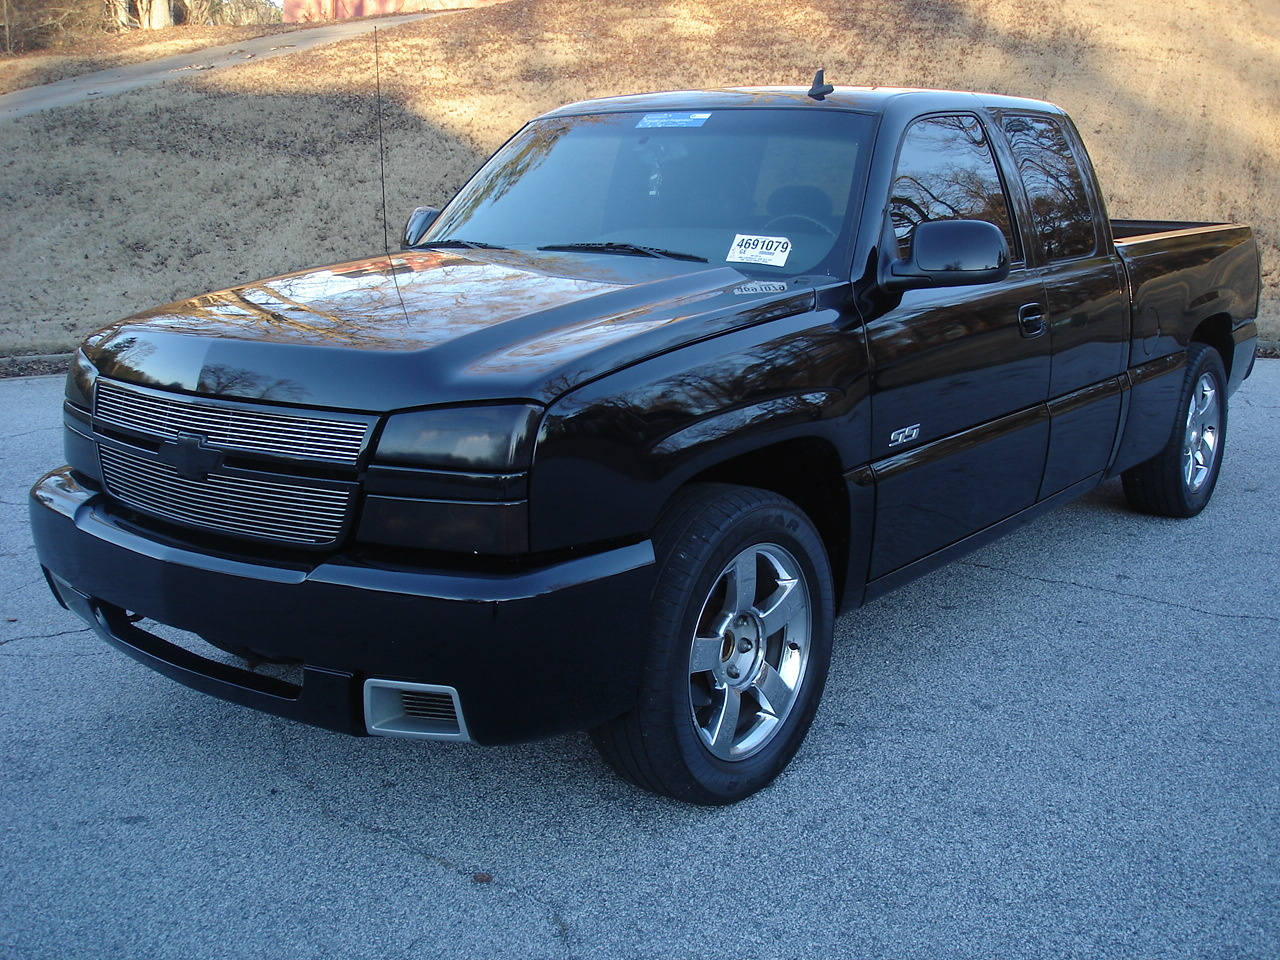 2004 chevy silverado ss for sale autos post. Black Bedroom Furniture Sets. Home Design Ideas